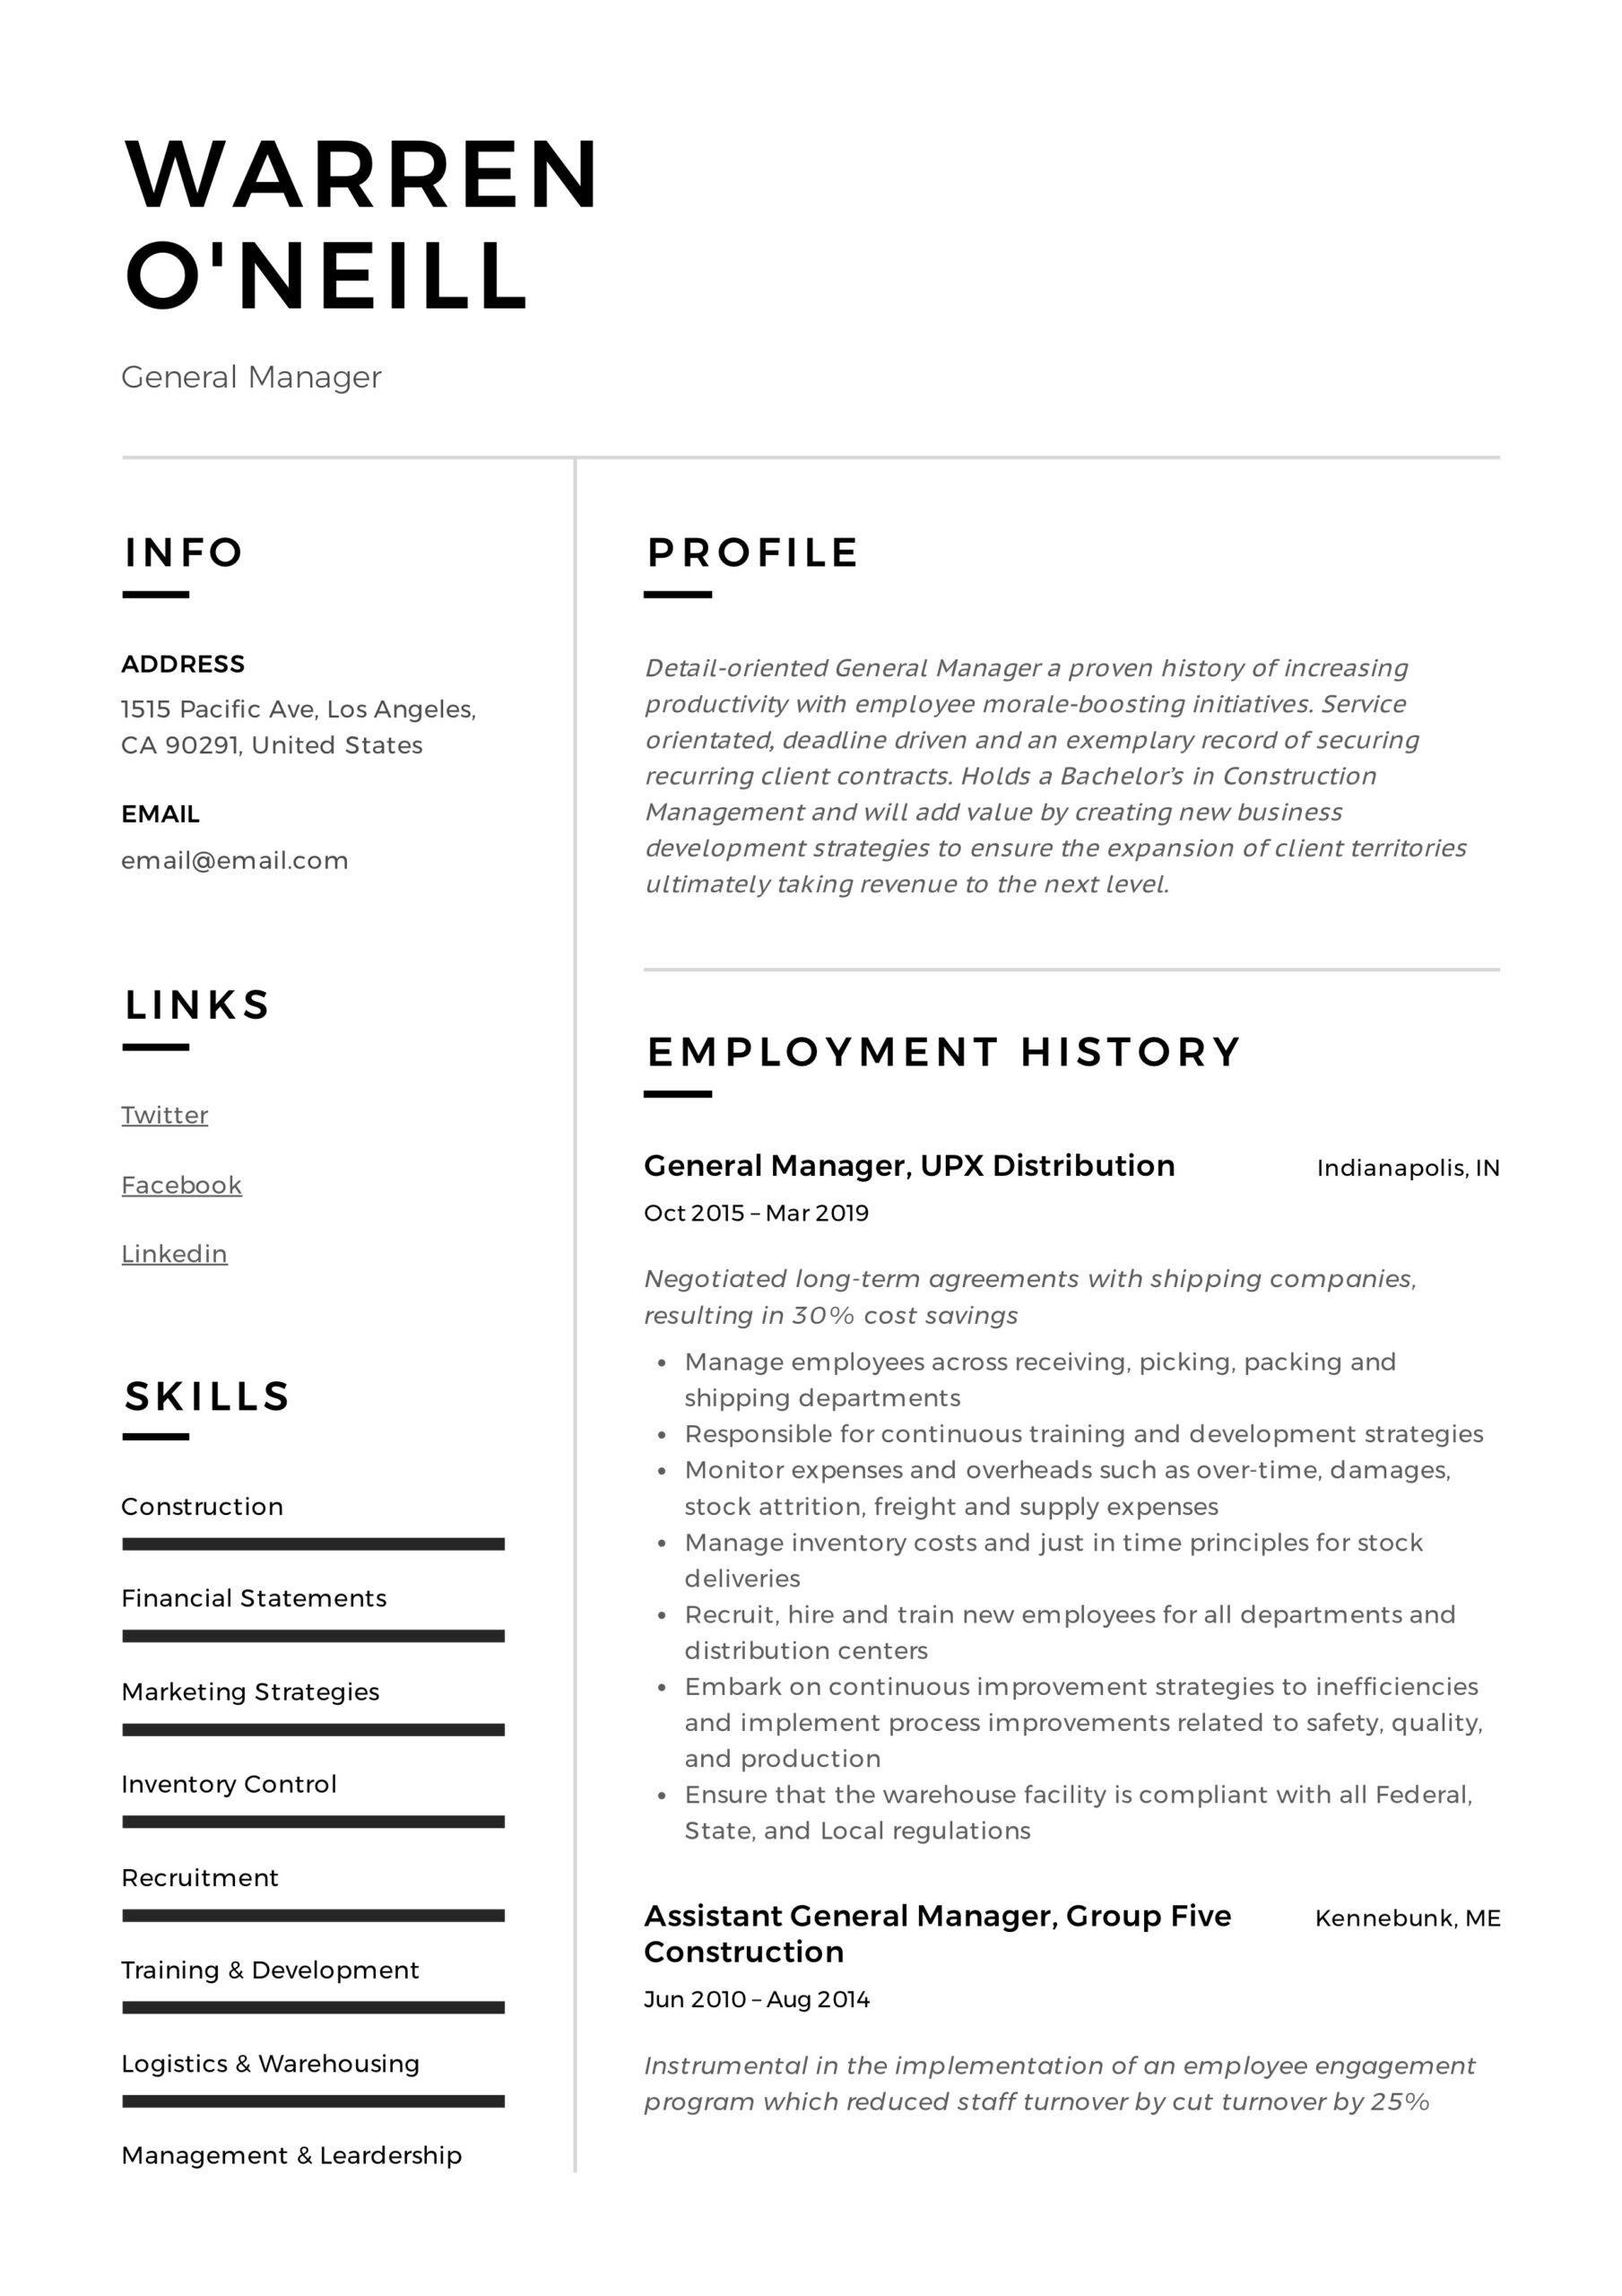 general manager resume writing guide examples pdf quantifying neill sous chef sample Resume Quantifying Resume Examples